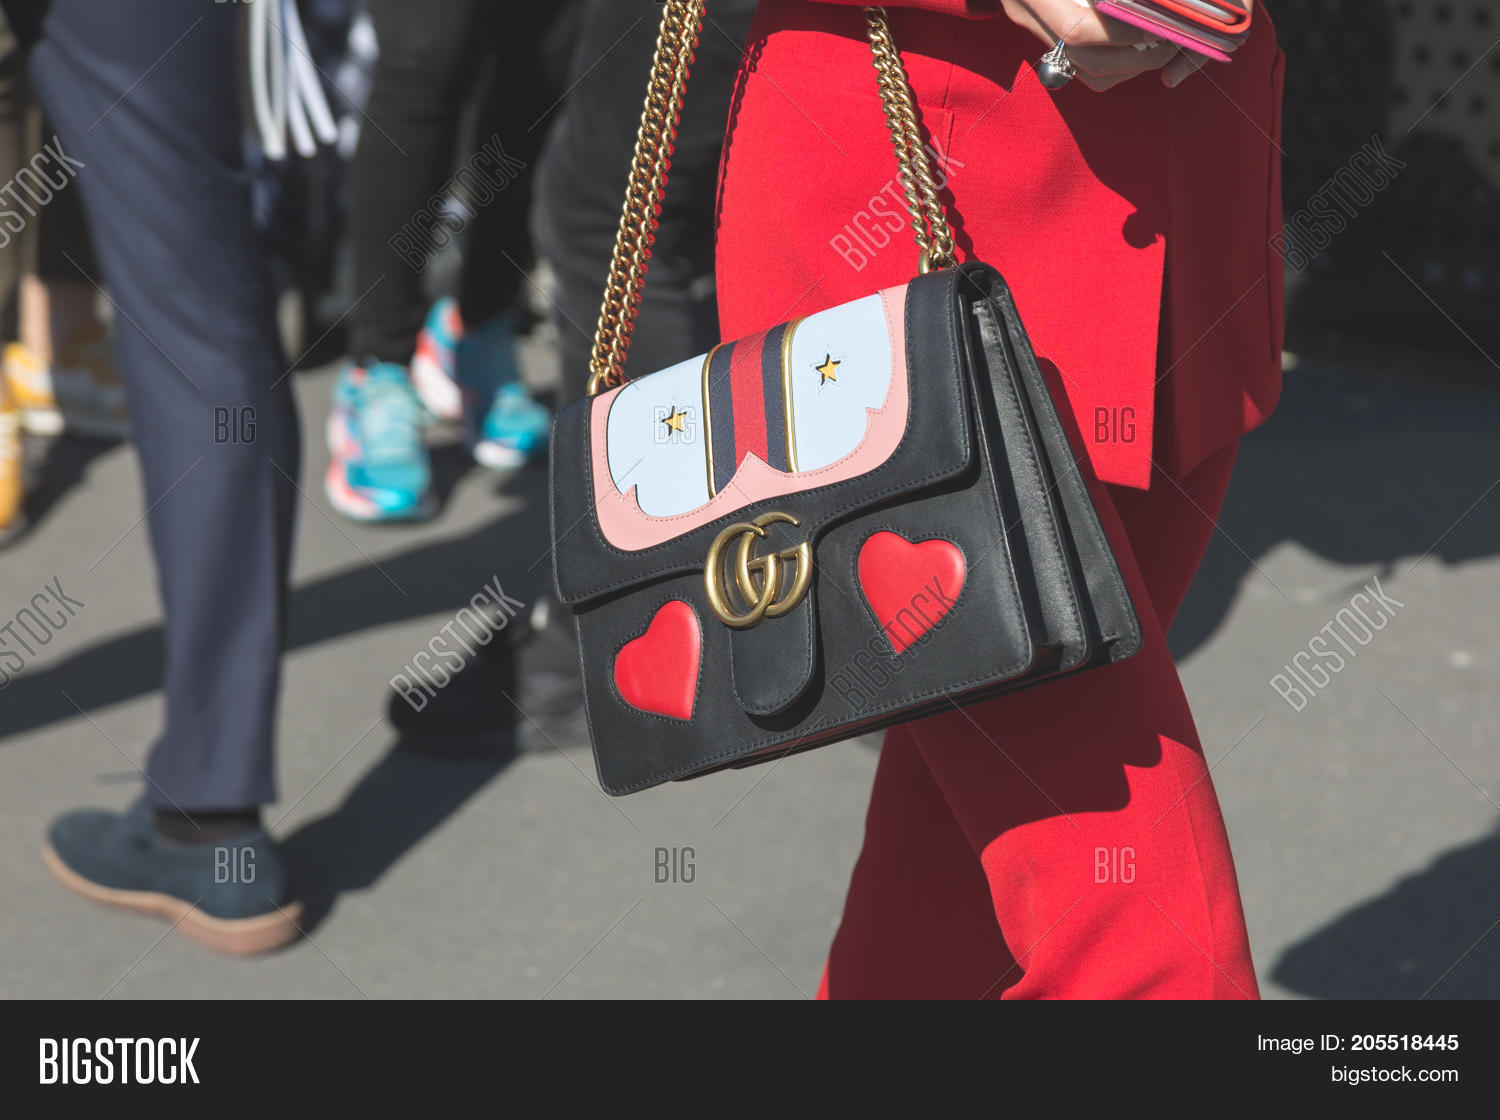 8711a367 MILAN ITALY - SEPTEMBER 20: Detail of bag outside Gucci fashion show  building during Milan